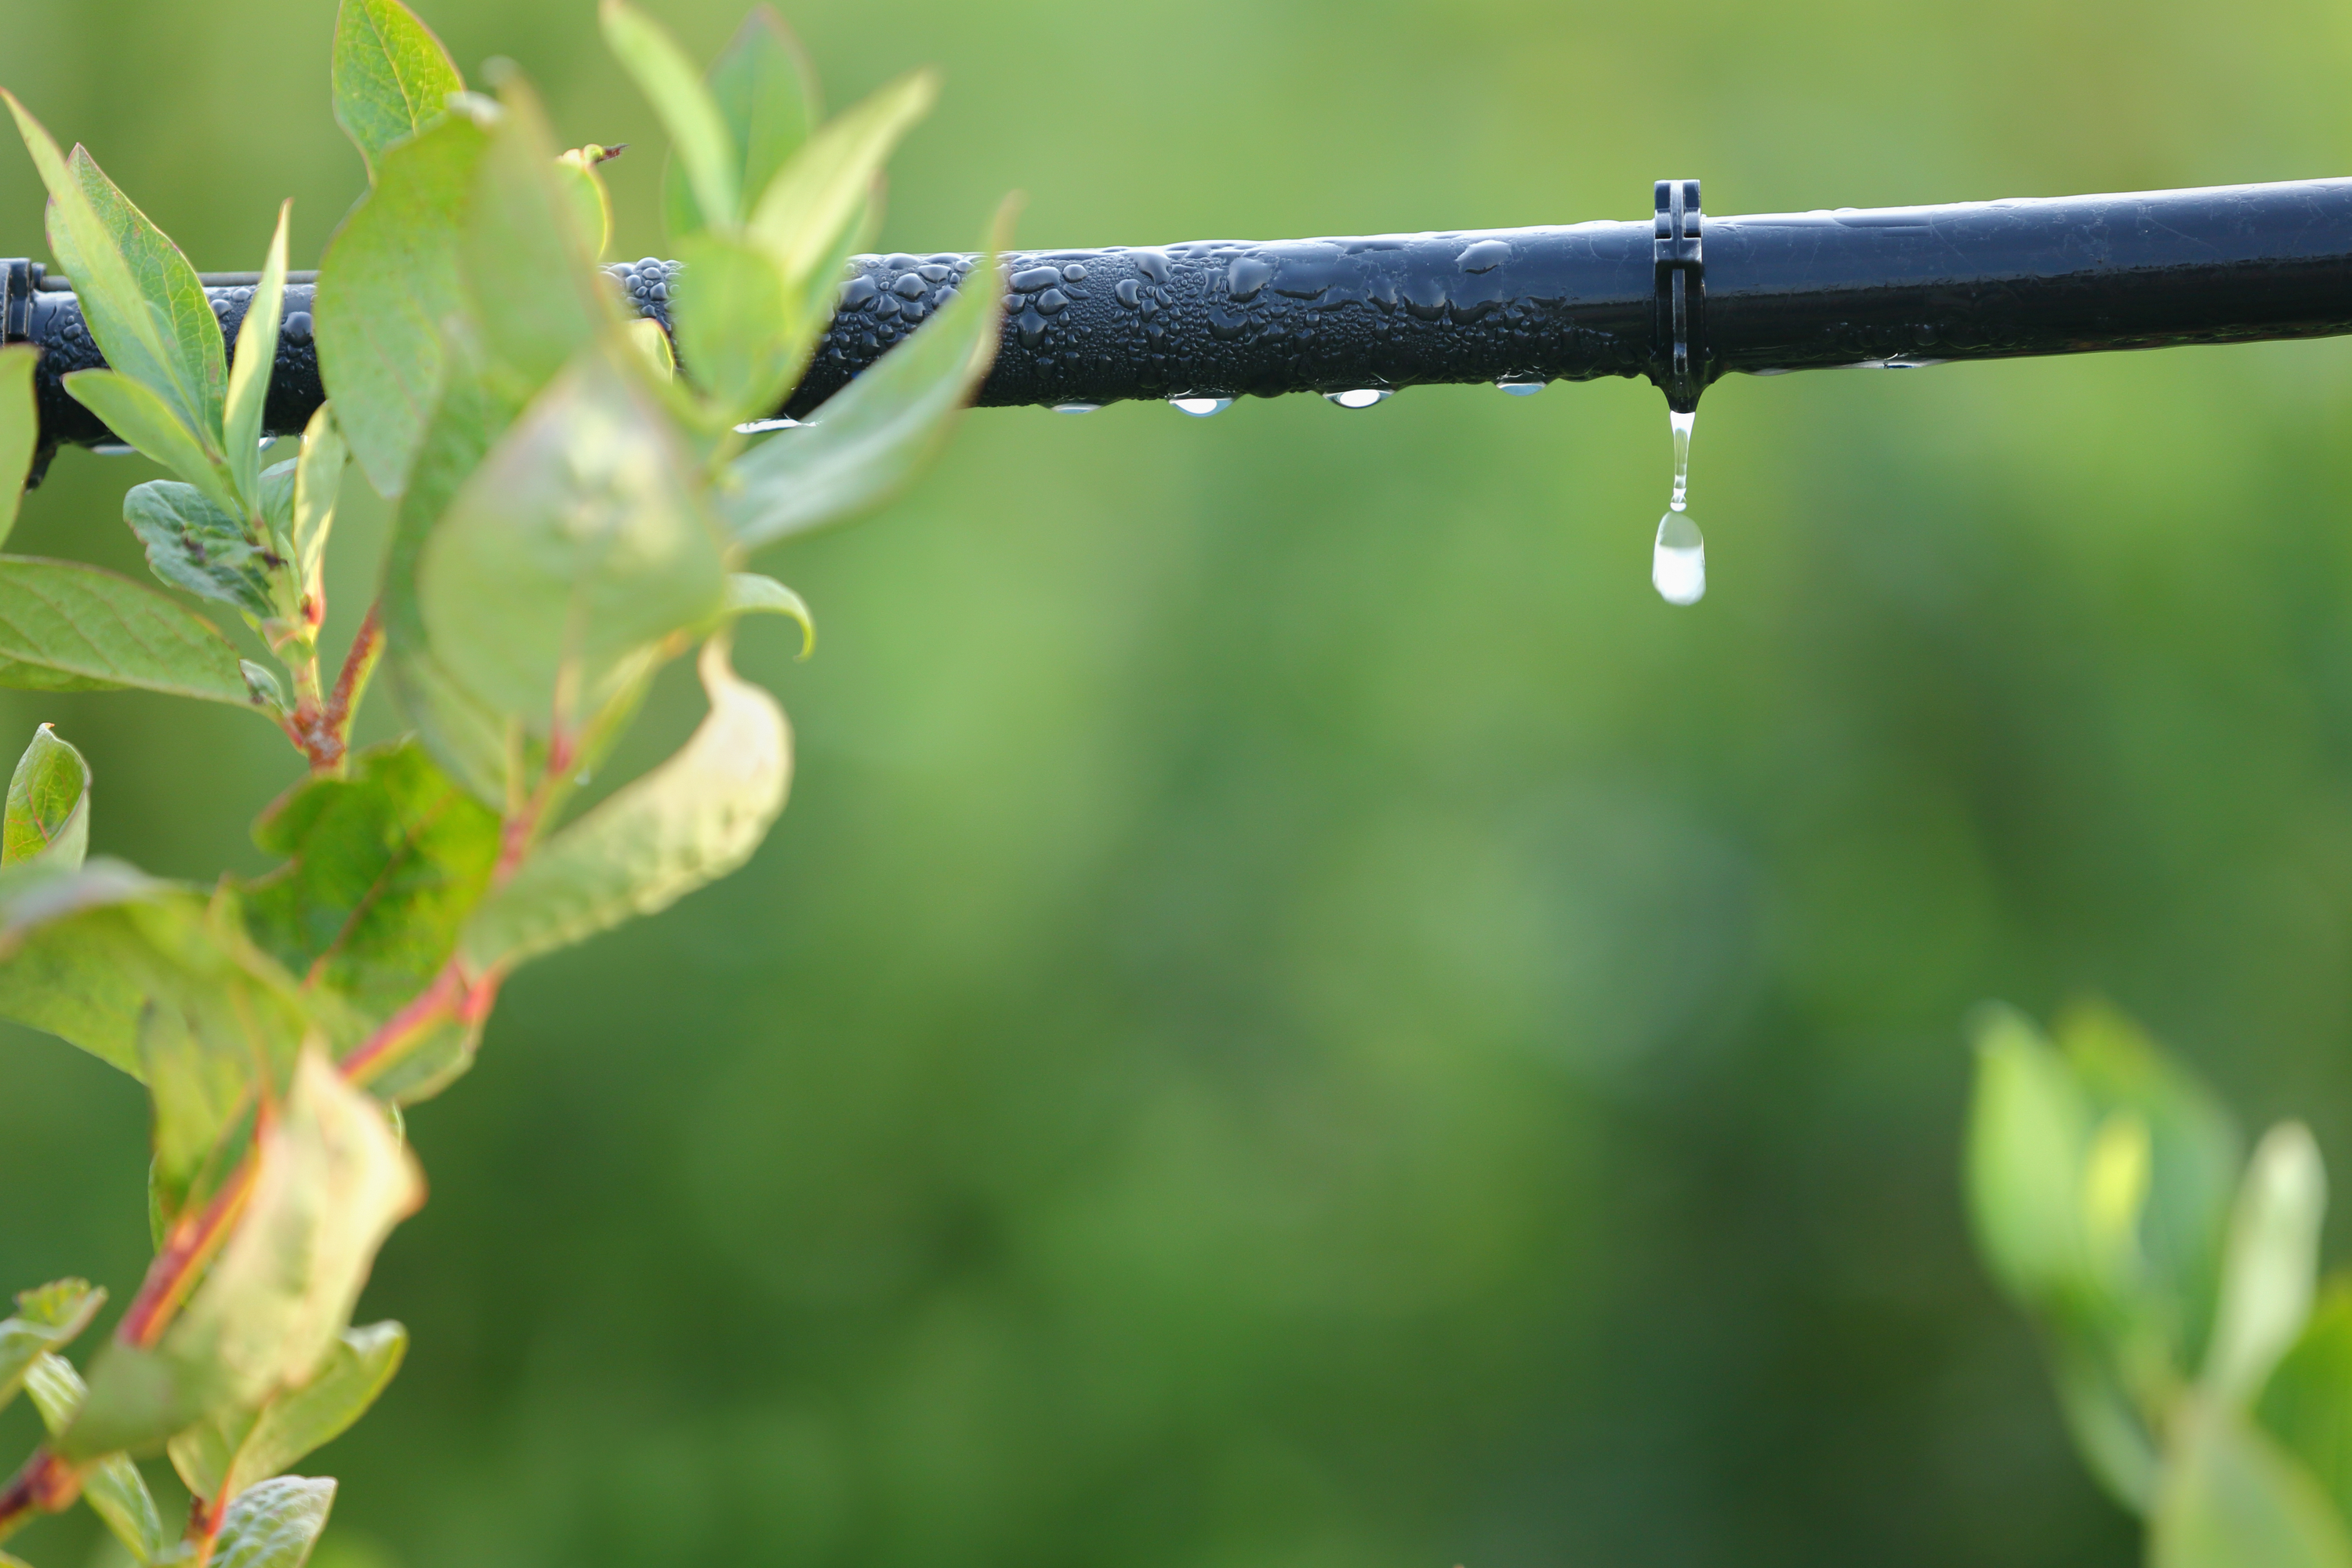 If you're looking to DIY a drip irrigation system, it's easy to do! Here's everything you need to know about making a drip irrigation system.